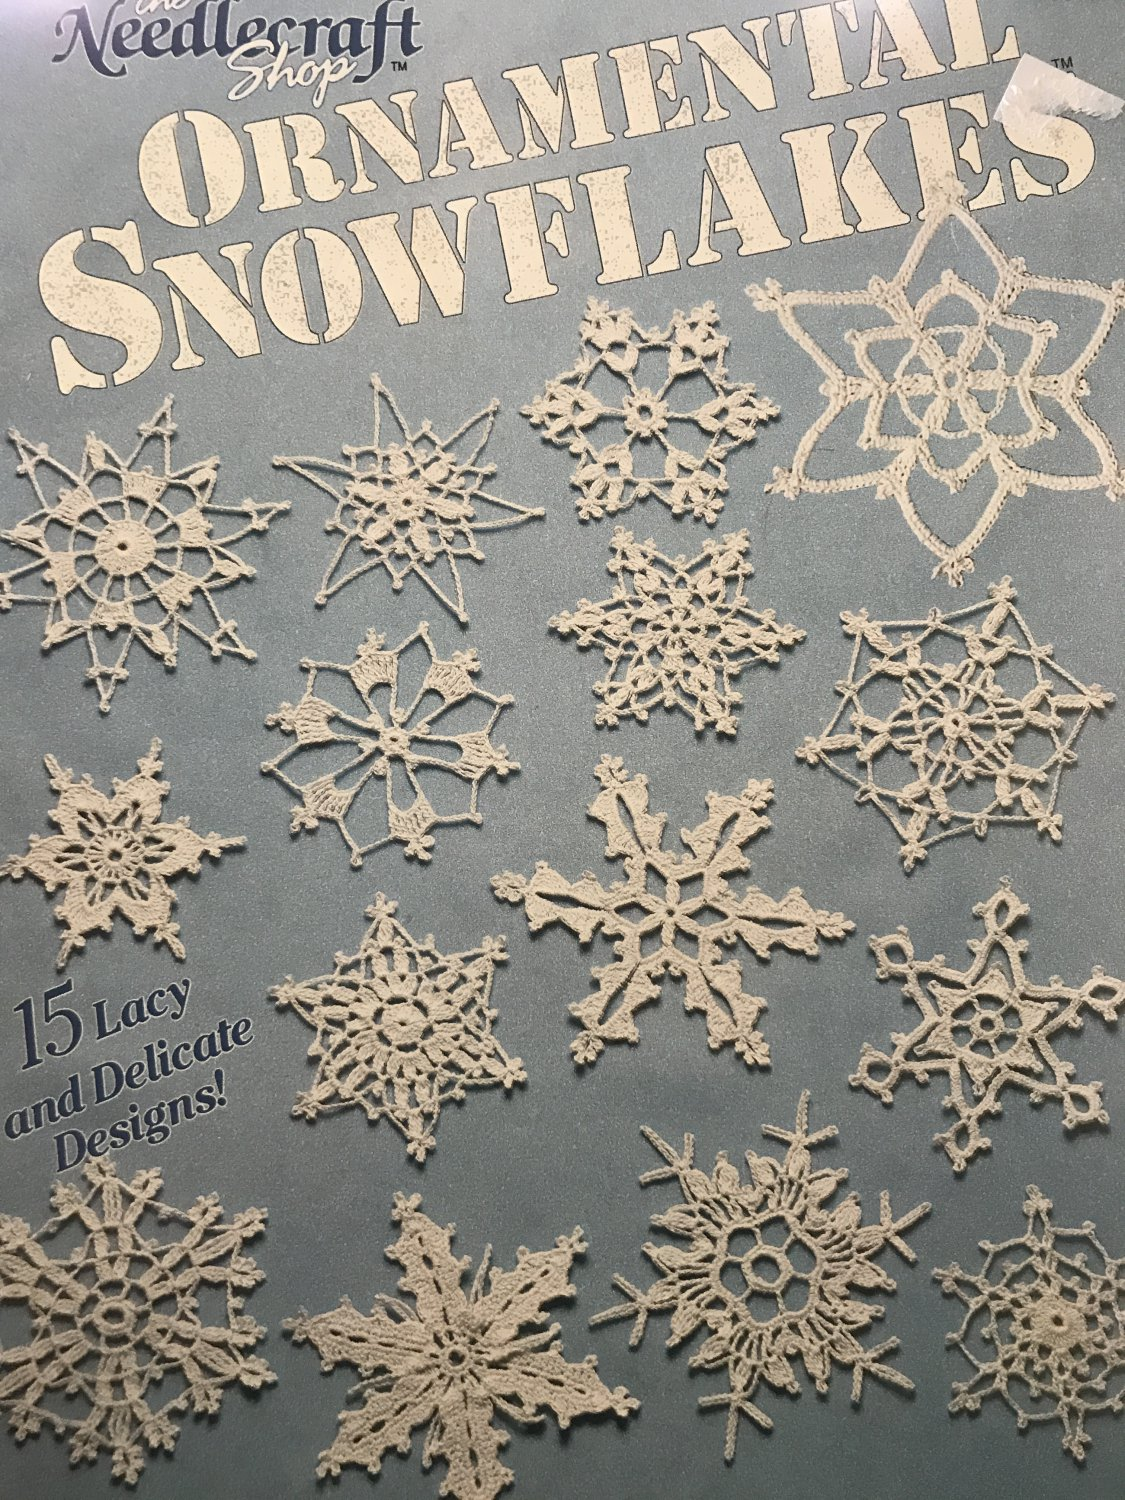 Ornamental Snowflakes  Lucille LaFlamme Crochet Instruction Pattern Book The Needlecraft Shop 901302